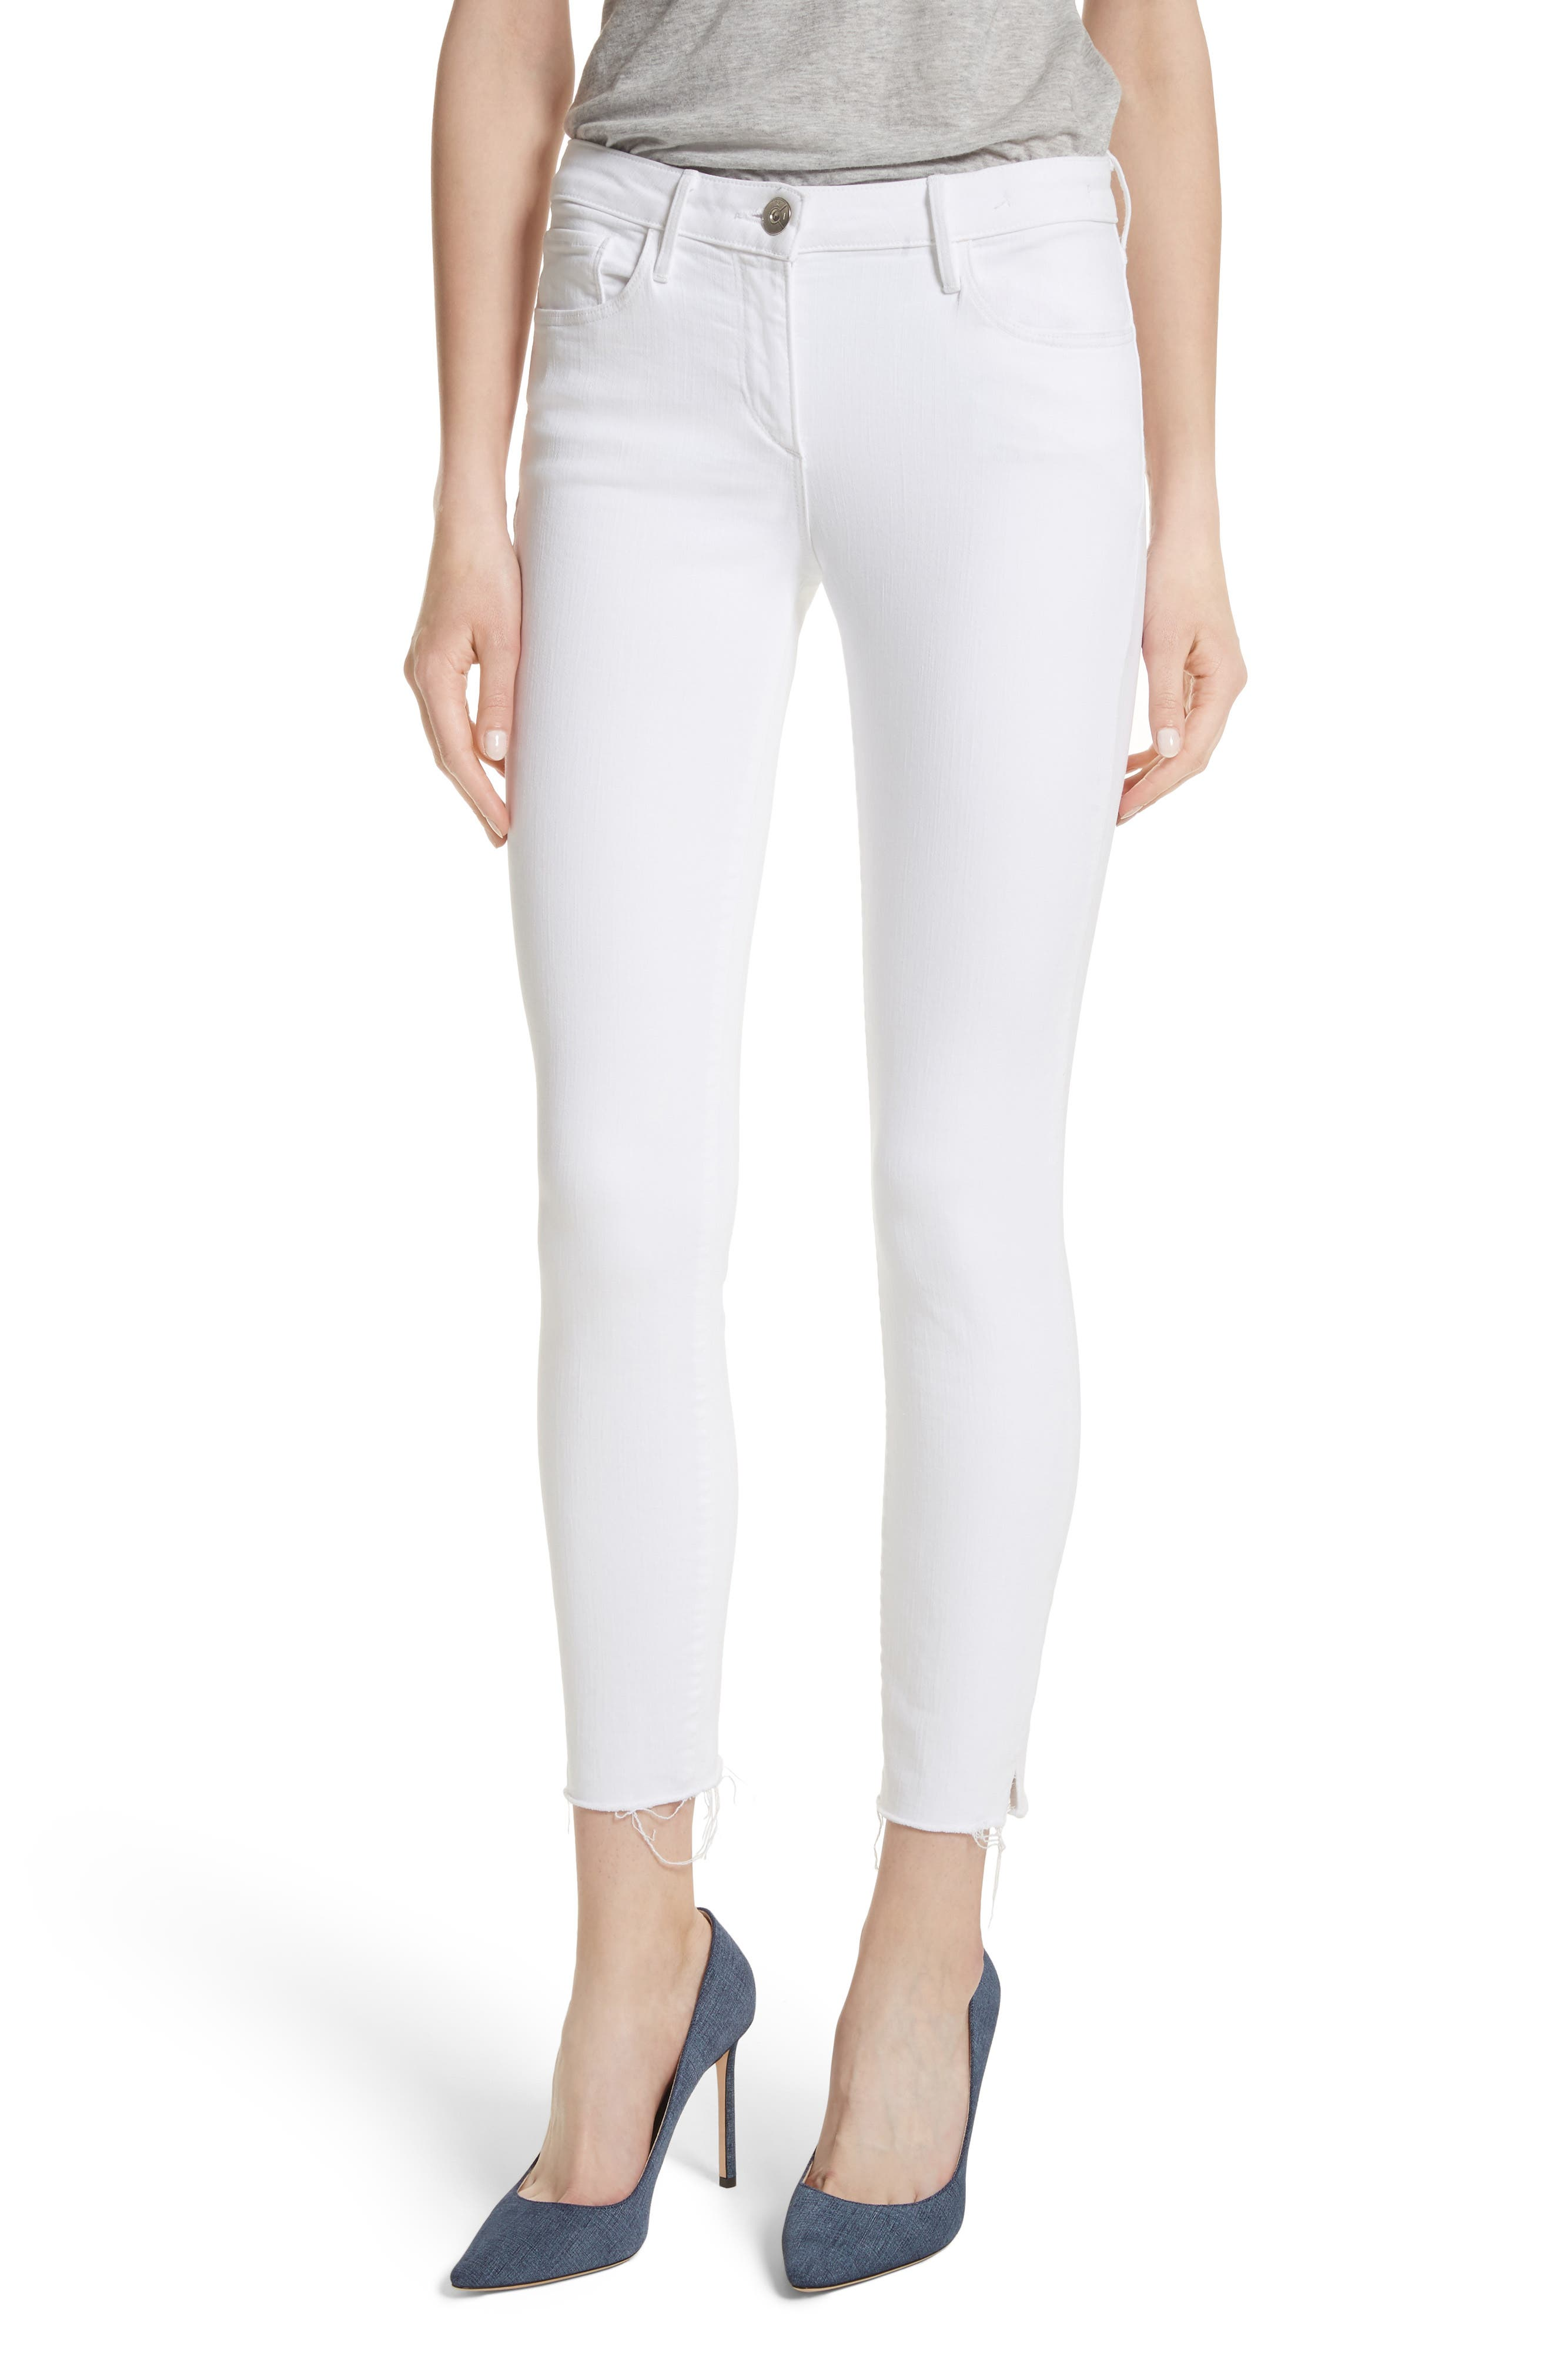 W2 Crop Skinny Jeans,                         Main,                         color, 100